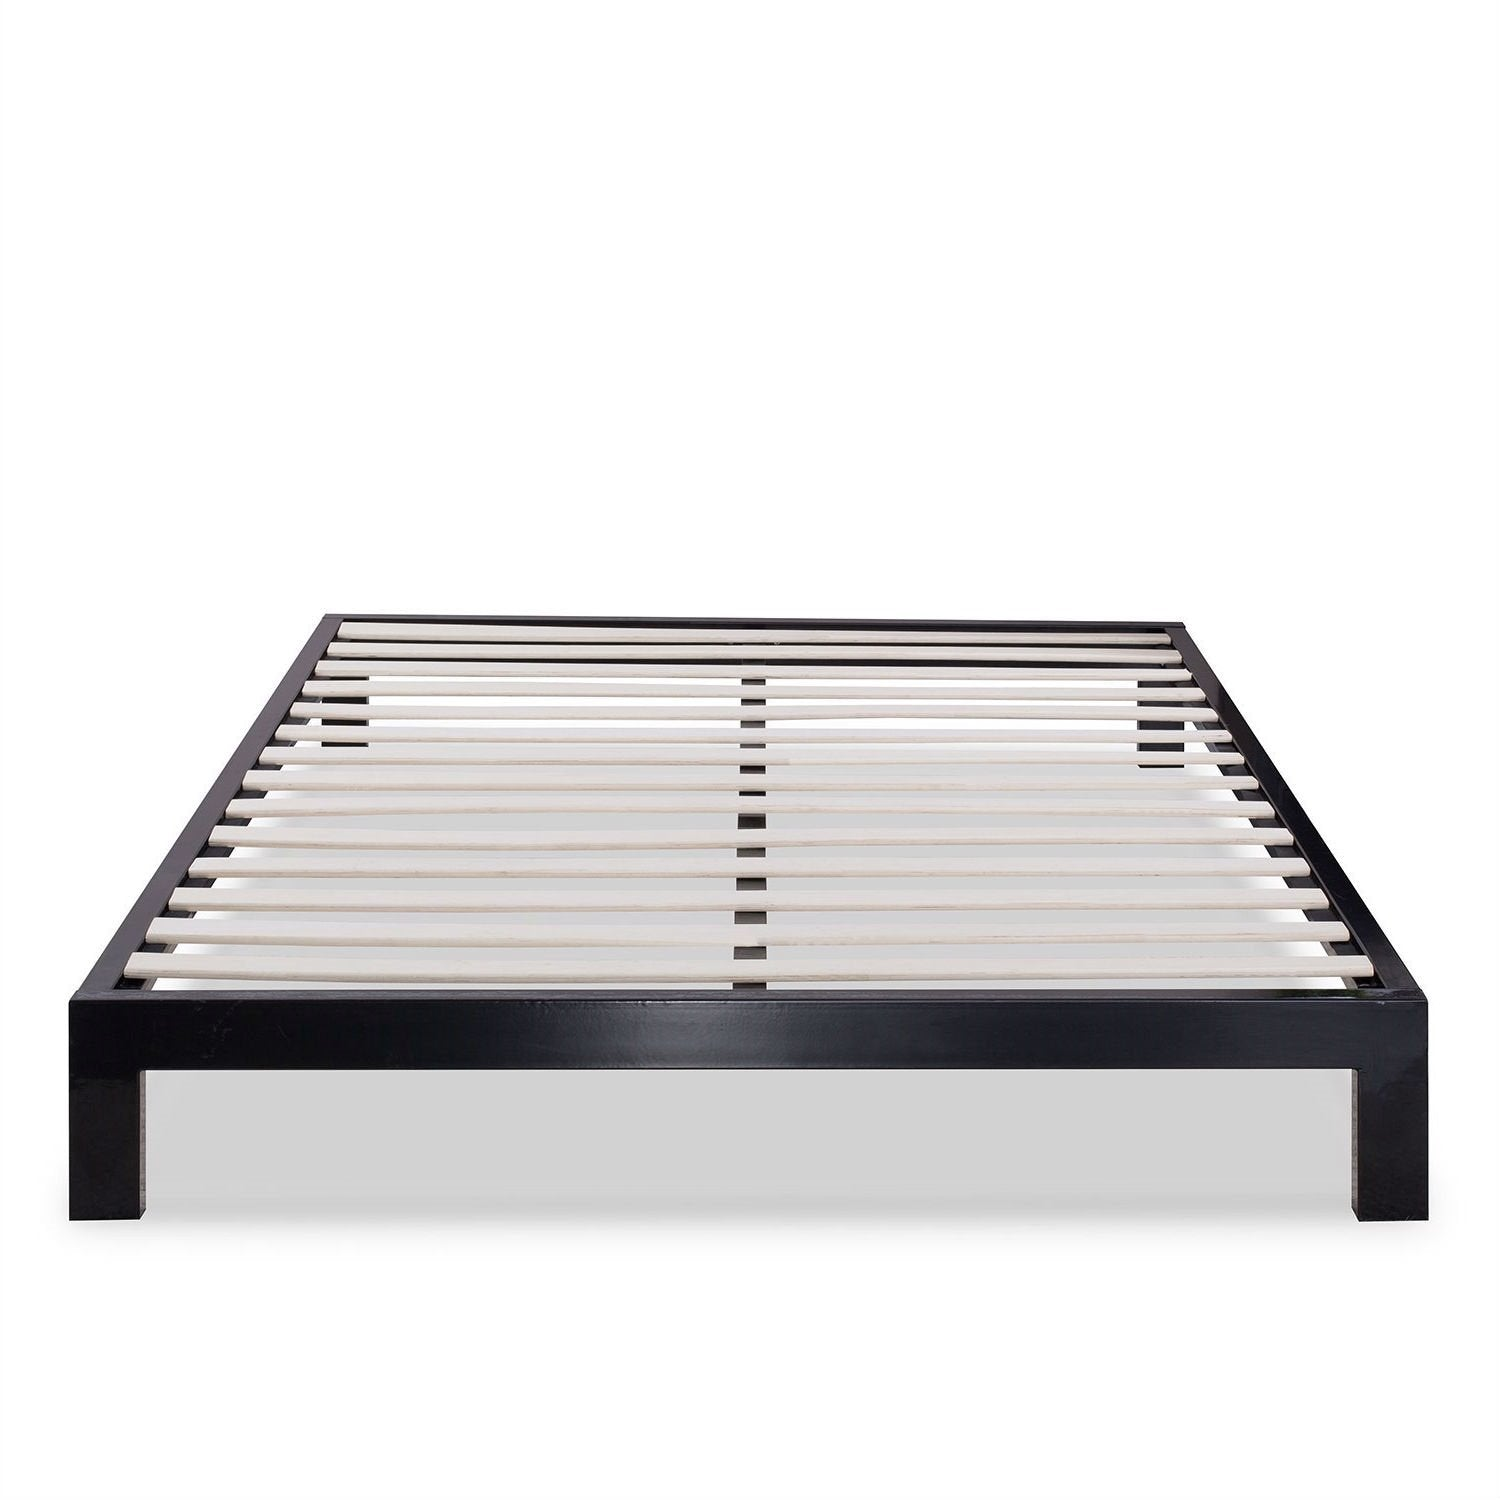 Queen Modern Black Metal Platform Bed Frame with Wooden Slats